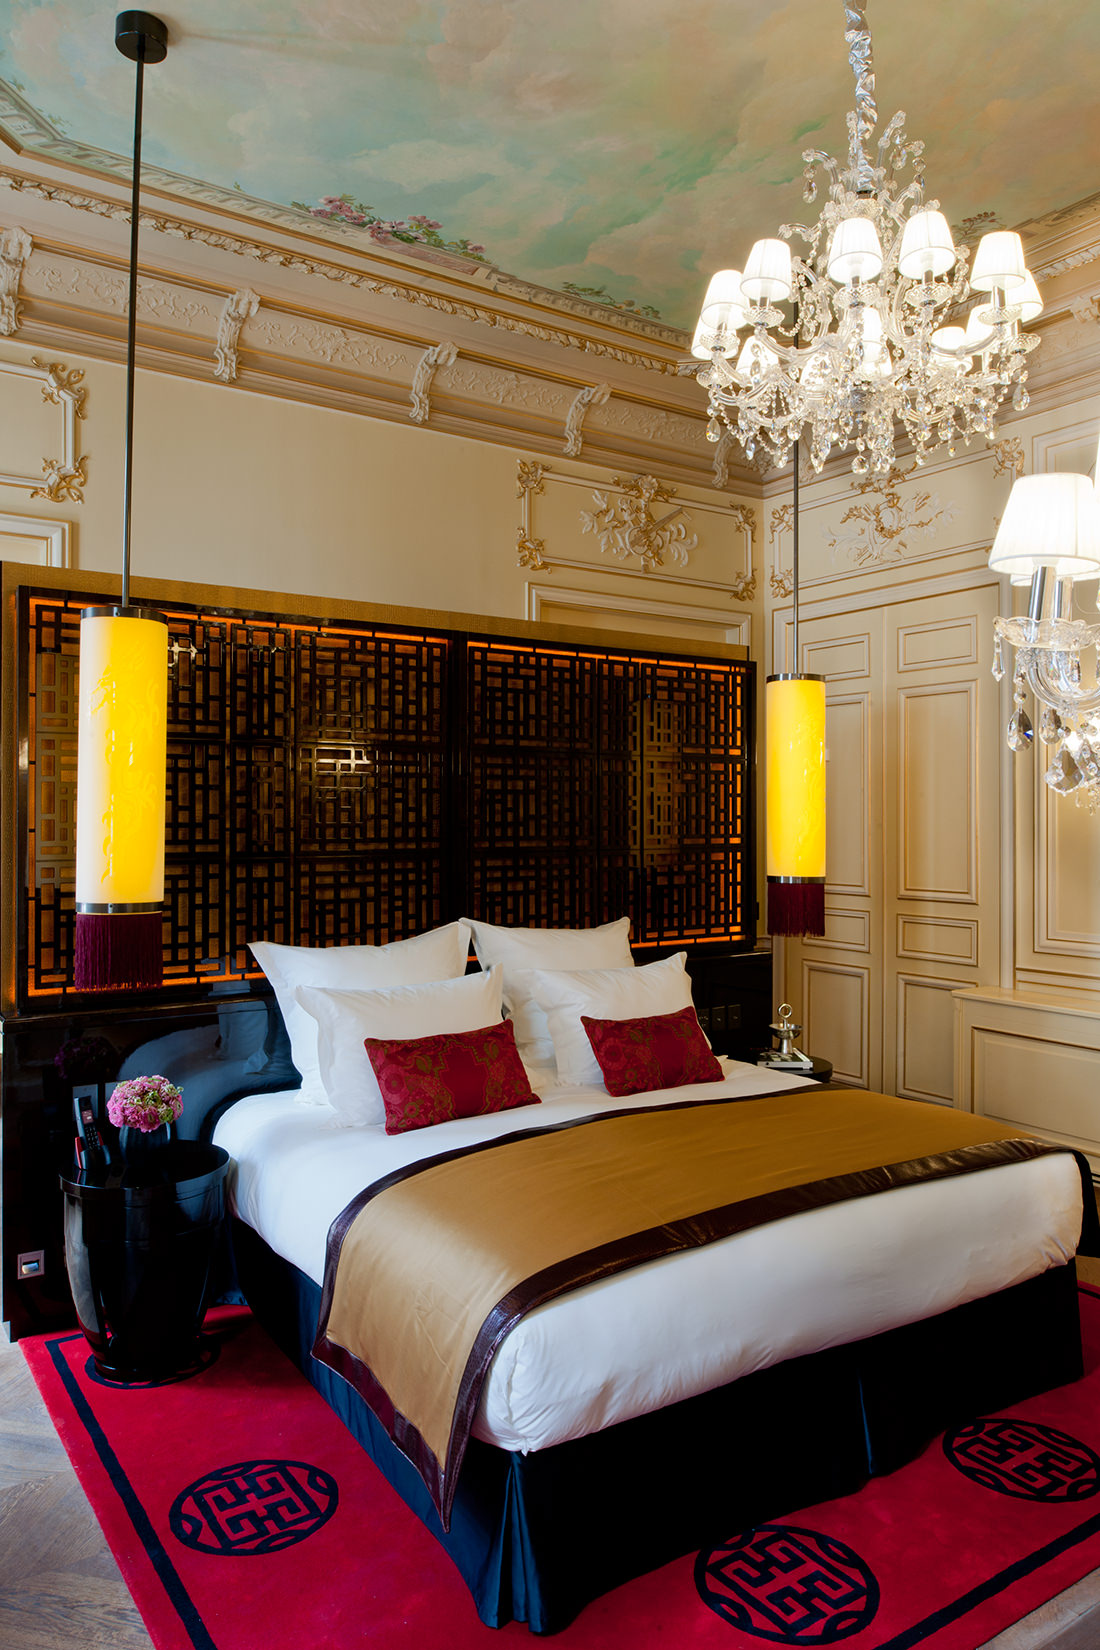 Buddha-Bar Hotel, Paris : not just another hotel, it's a ...